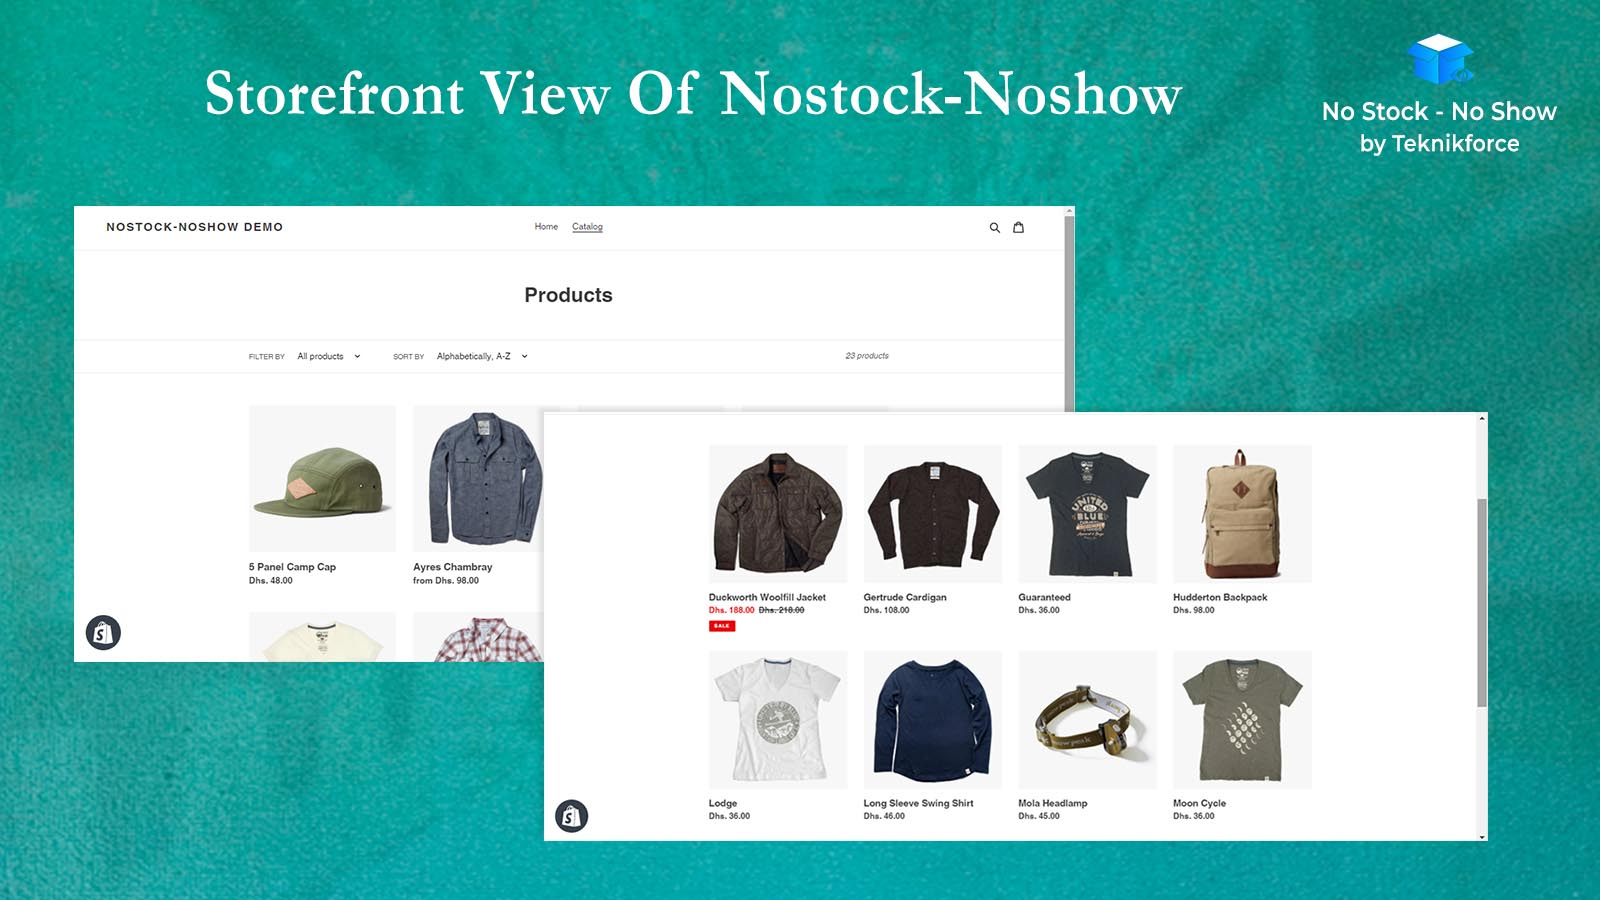 Storefront view of Nostock-Noshow by teknikforce